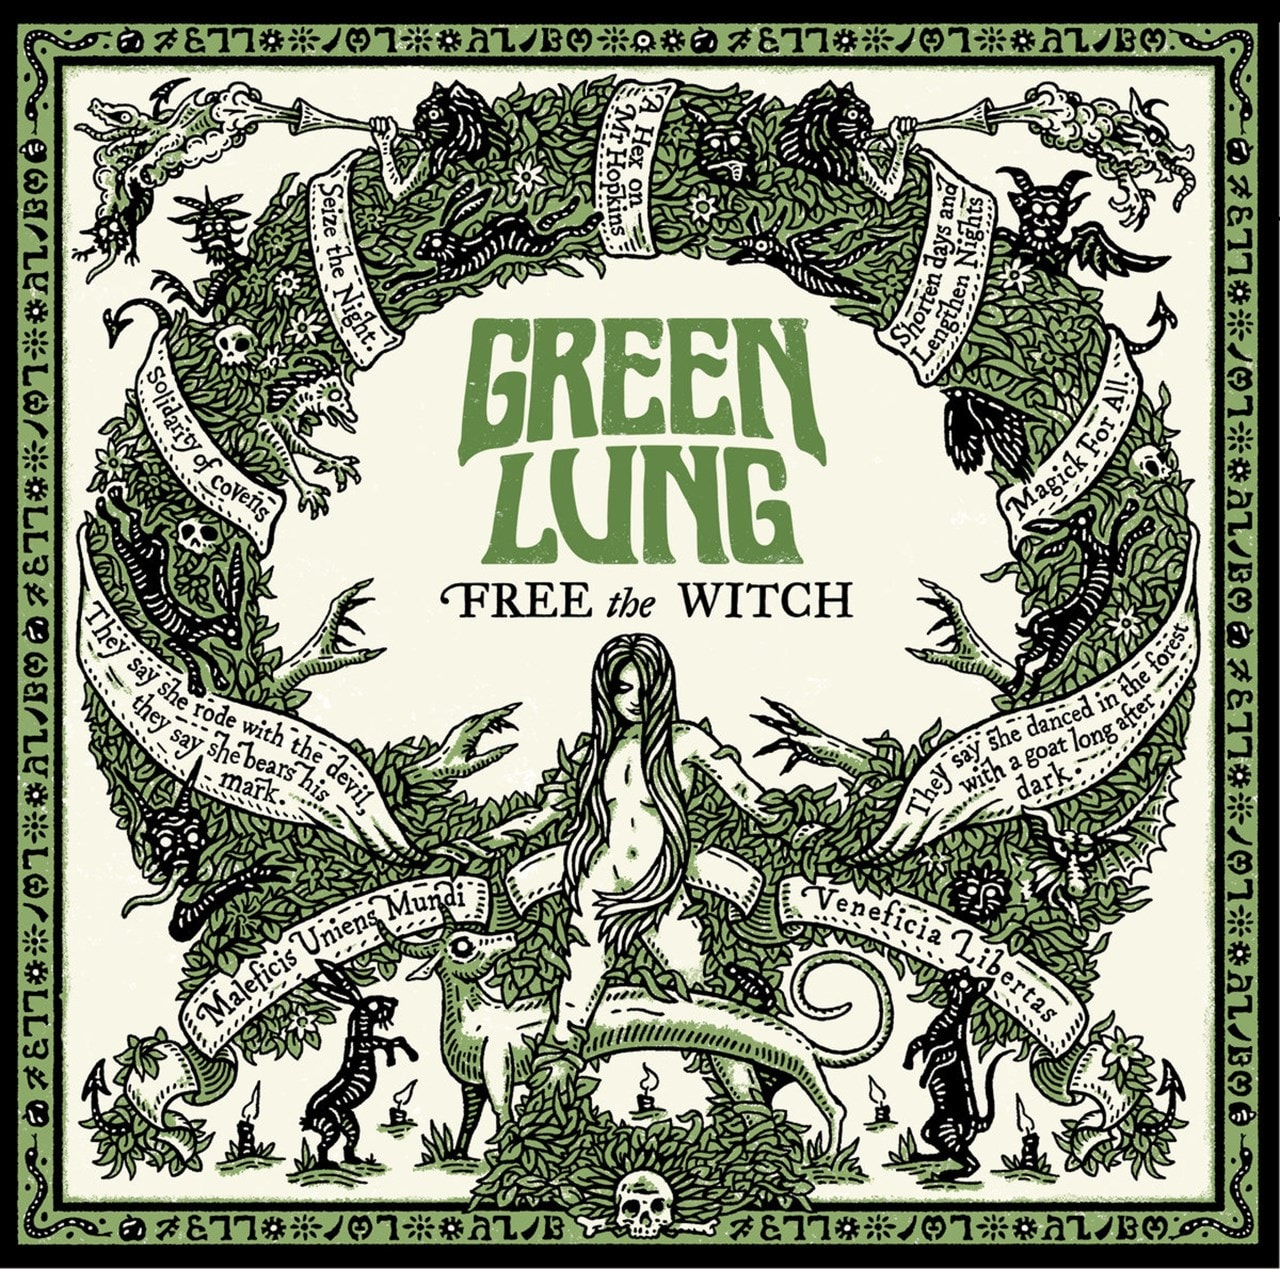 Free the Witch - 1